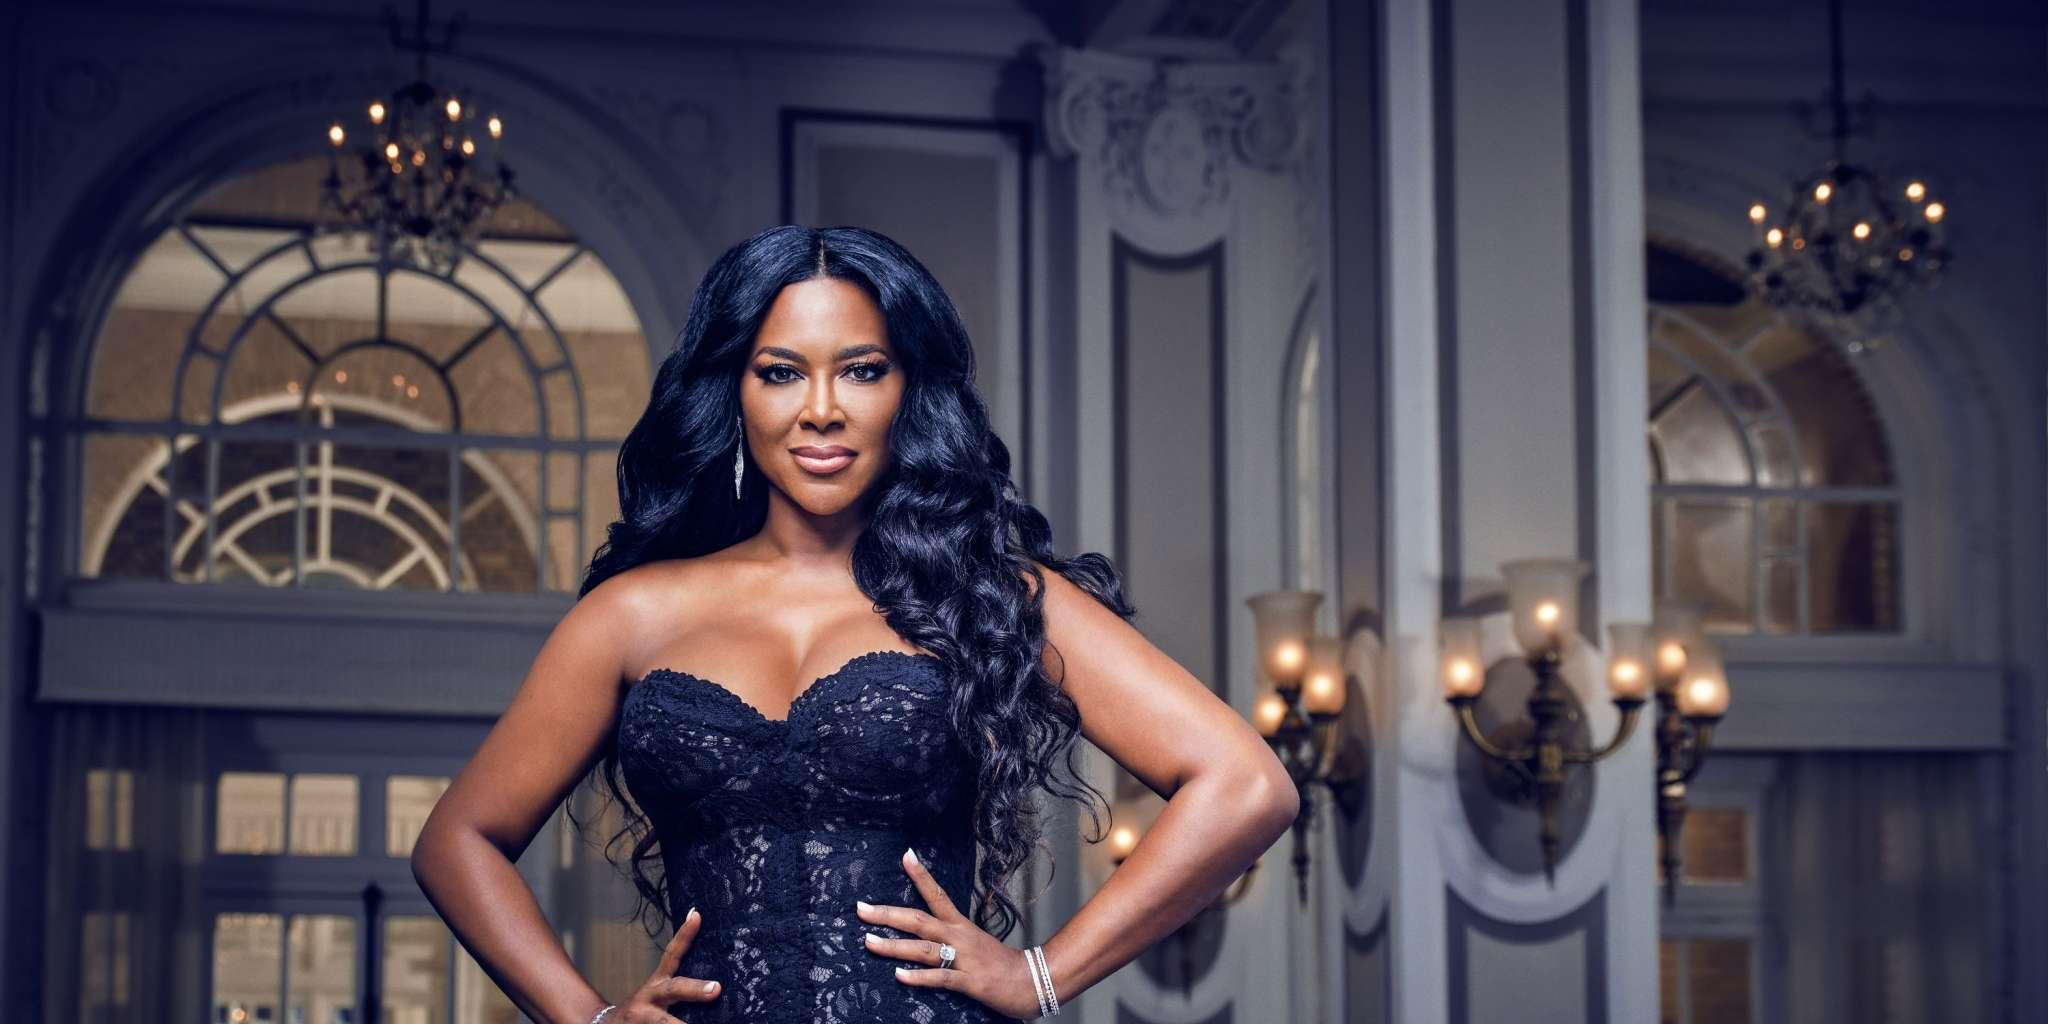 Kenya Moore Looks Gorgeous In This Pink Outfit - See Her Latest Pics